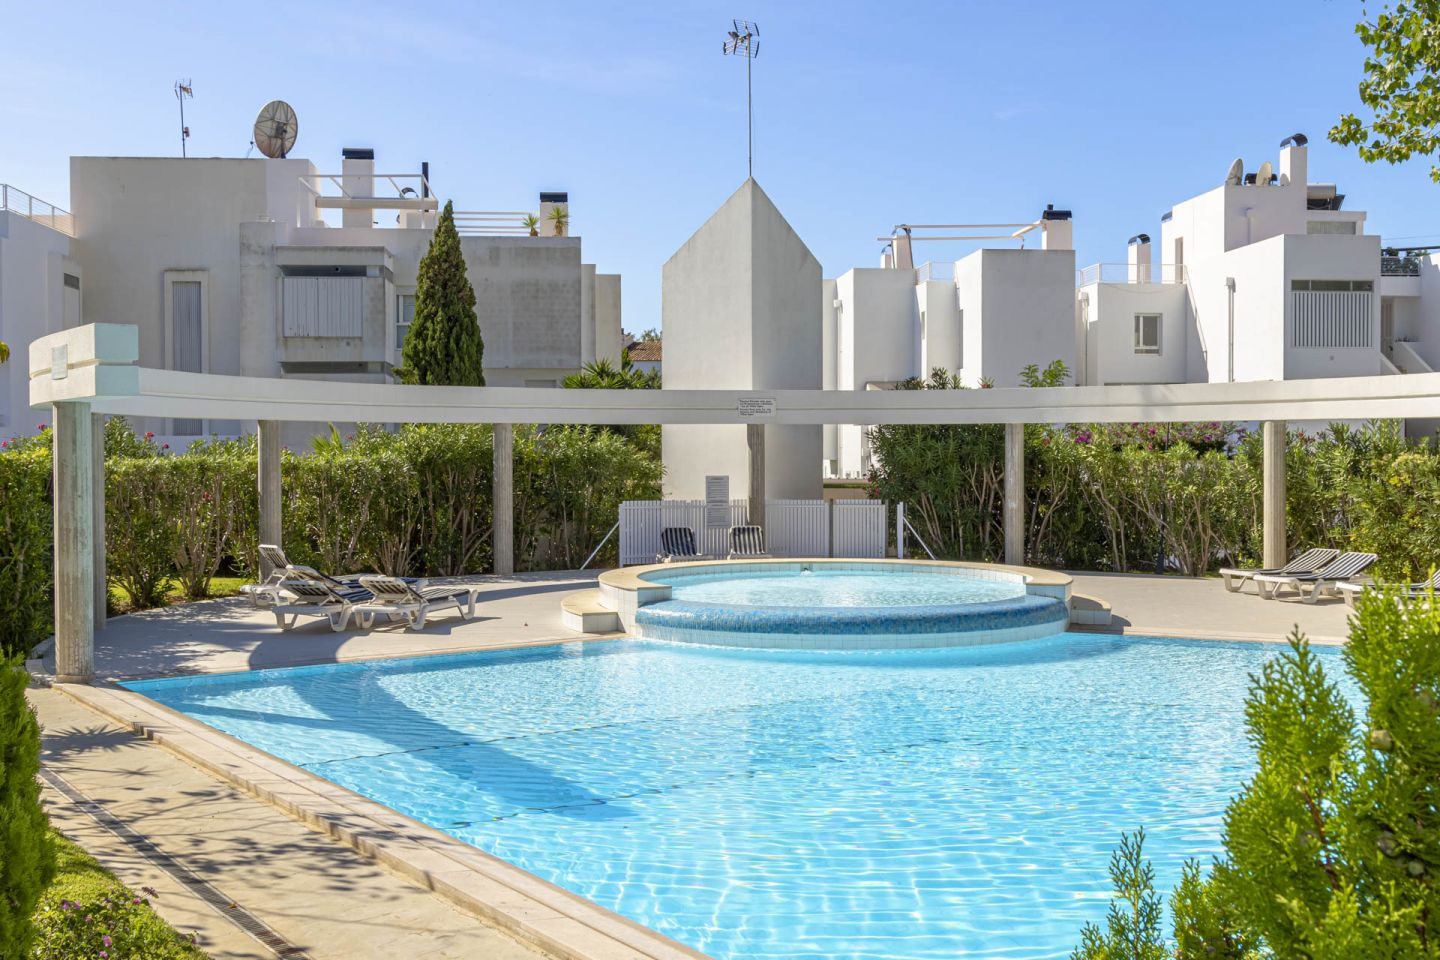 5 Bed Townhouse for sale in Puerto Pollensa 9